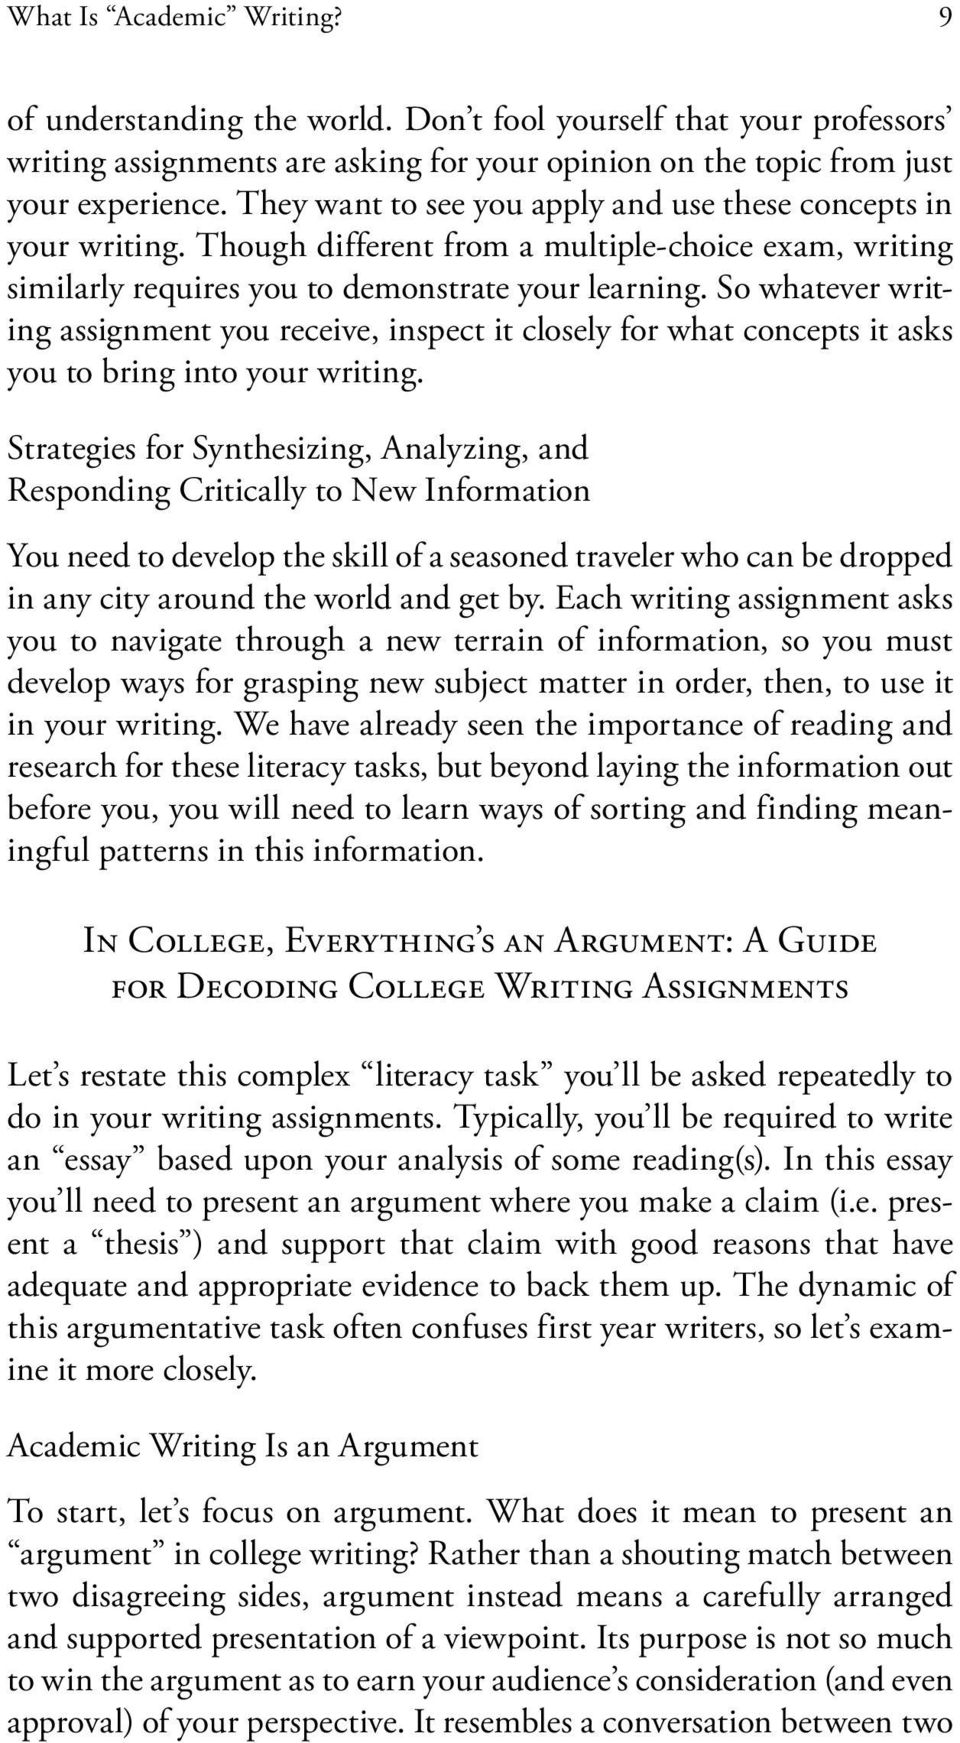 So whatever writing assignment you receive, inspect it closely for what concepts it asks you to bring into your writing.